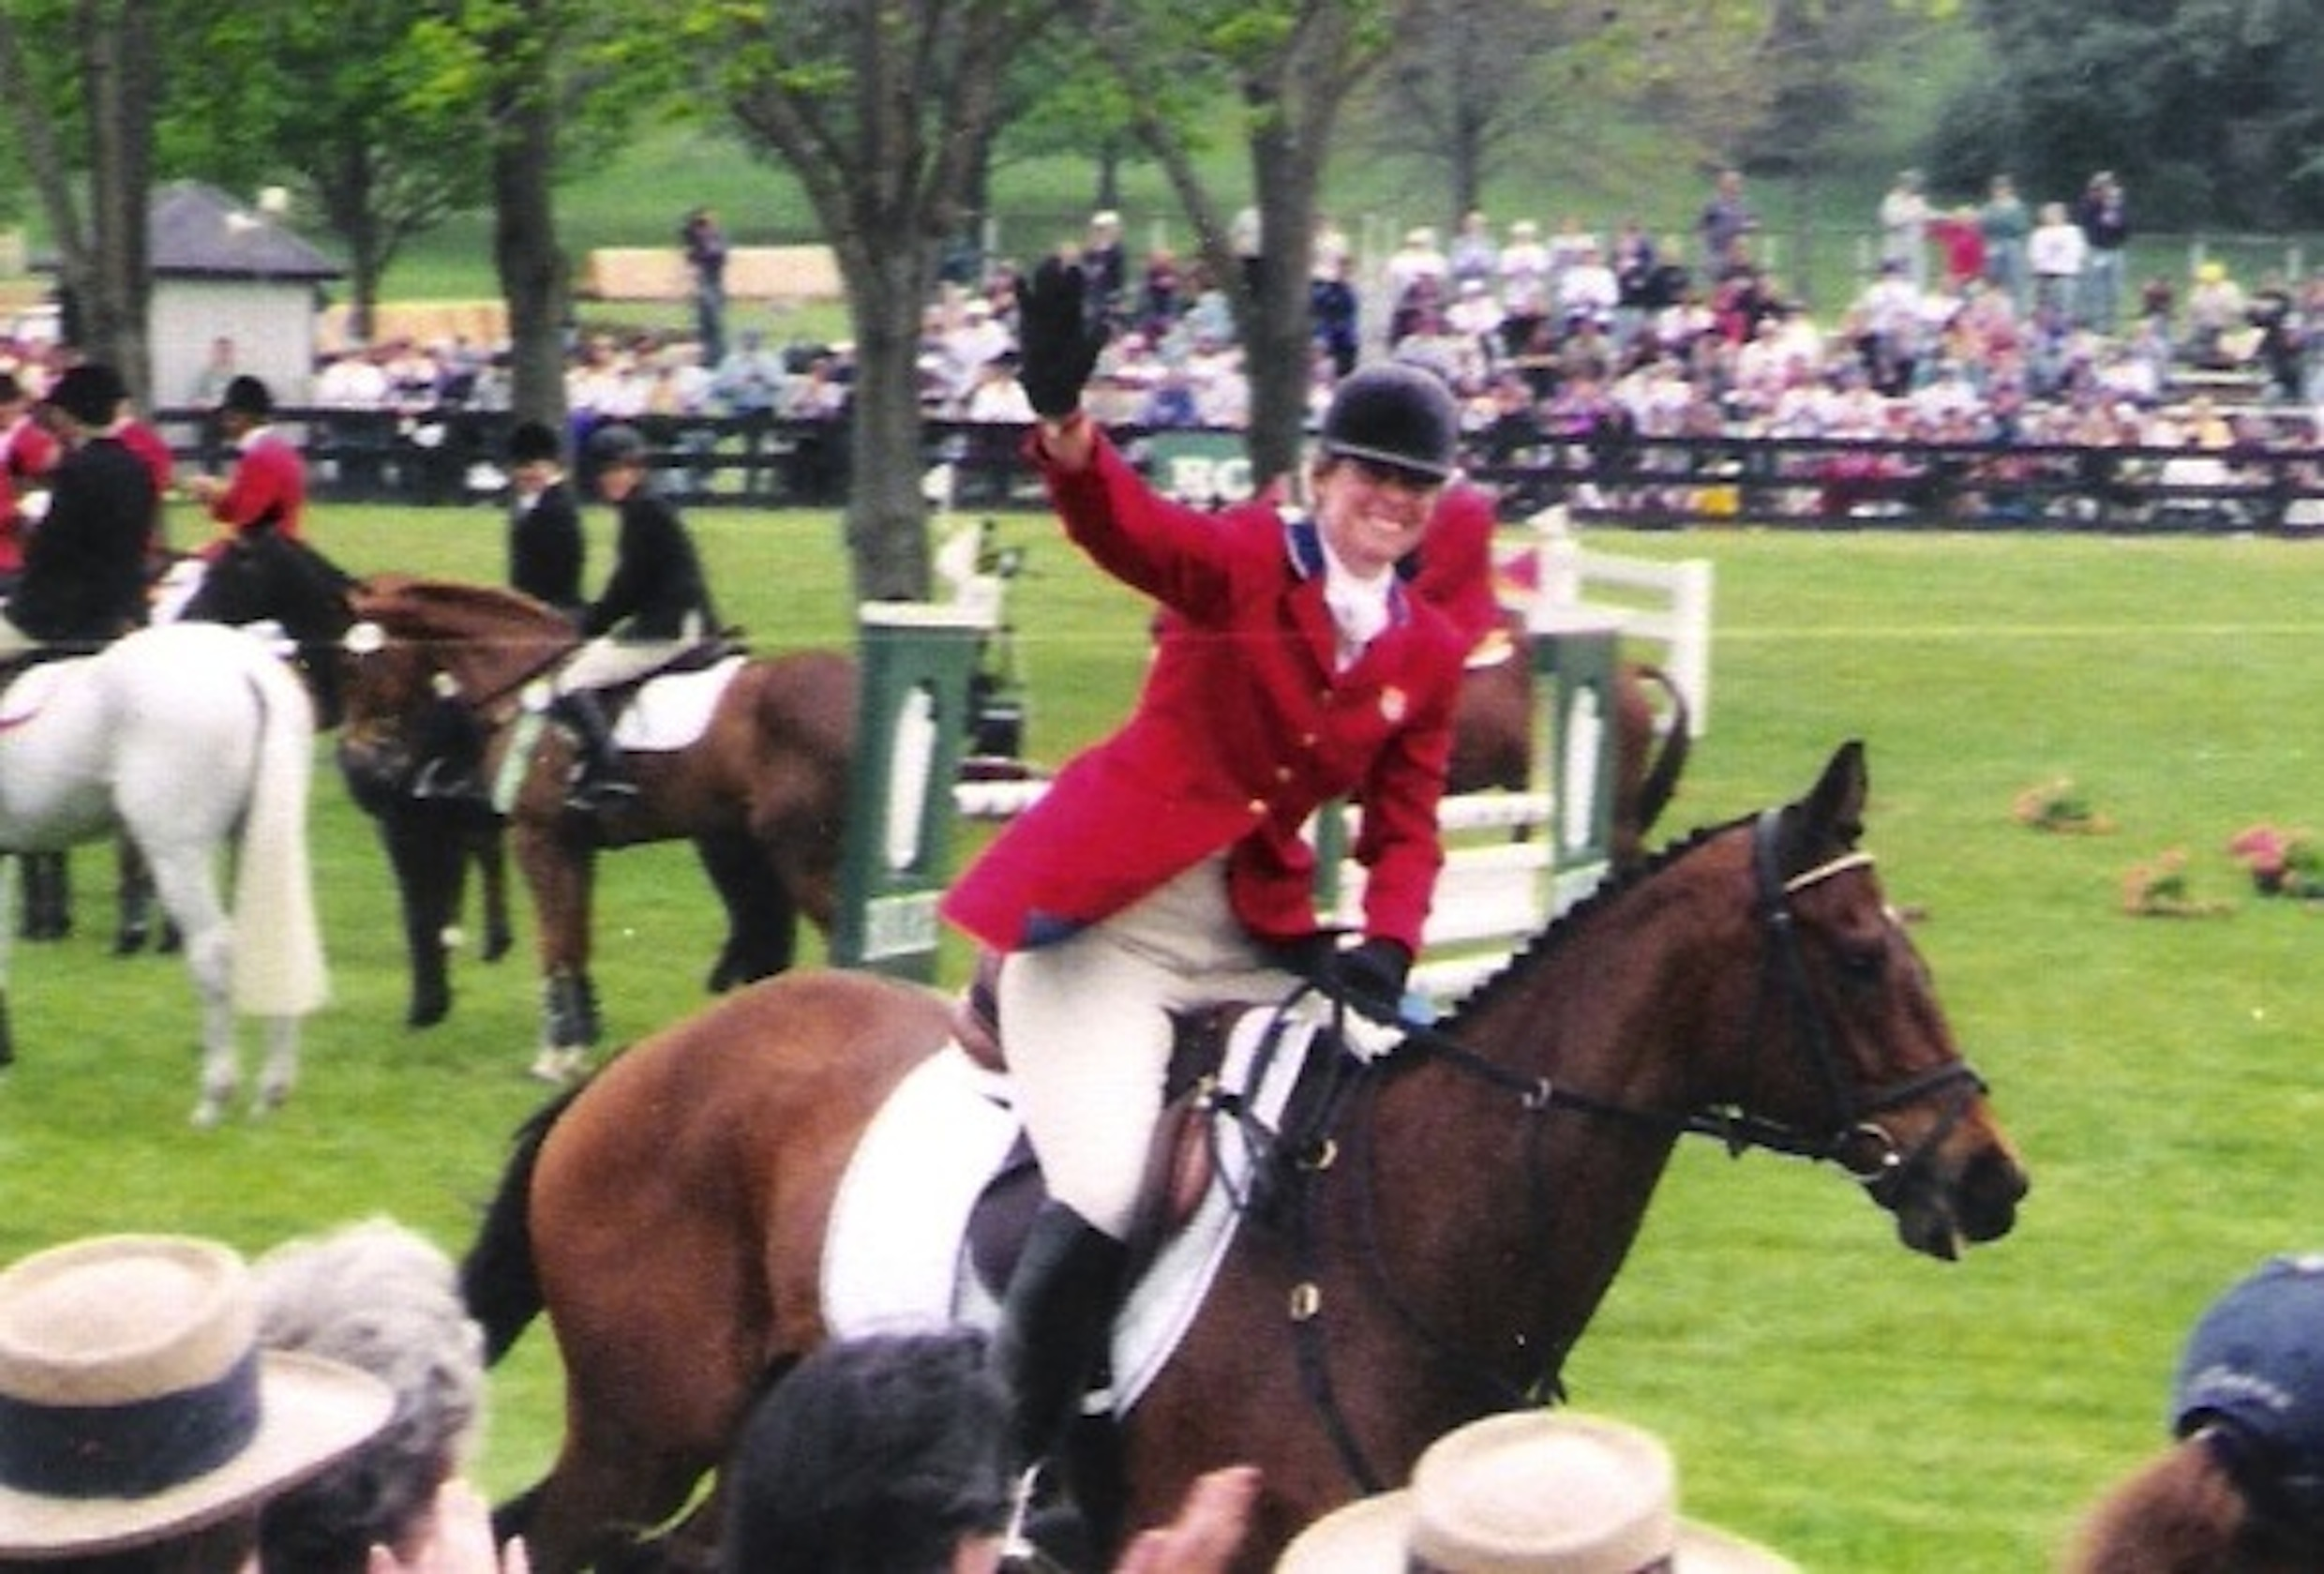 Triumphant in 1998 at Rolex Kentucky Three-Day Event: Dorothy Trapp and Molokai enjoy their victory gallop after finishing second overall in the inaugural CCI*** and winning the first-ever National four-star championship. (Photo Courtesy of Visionaire)